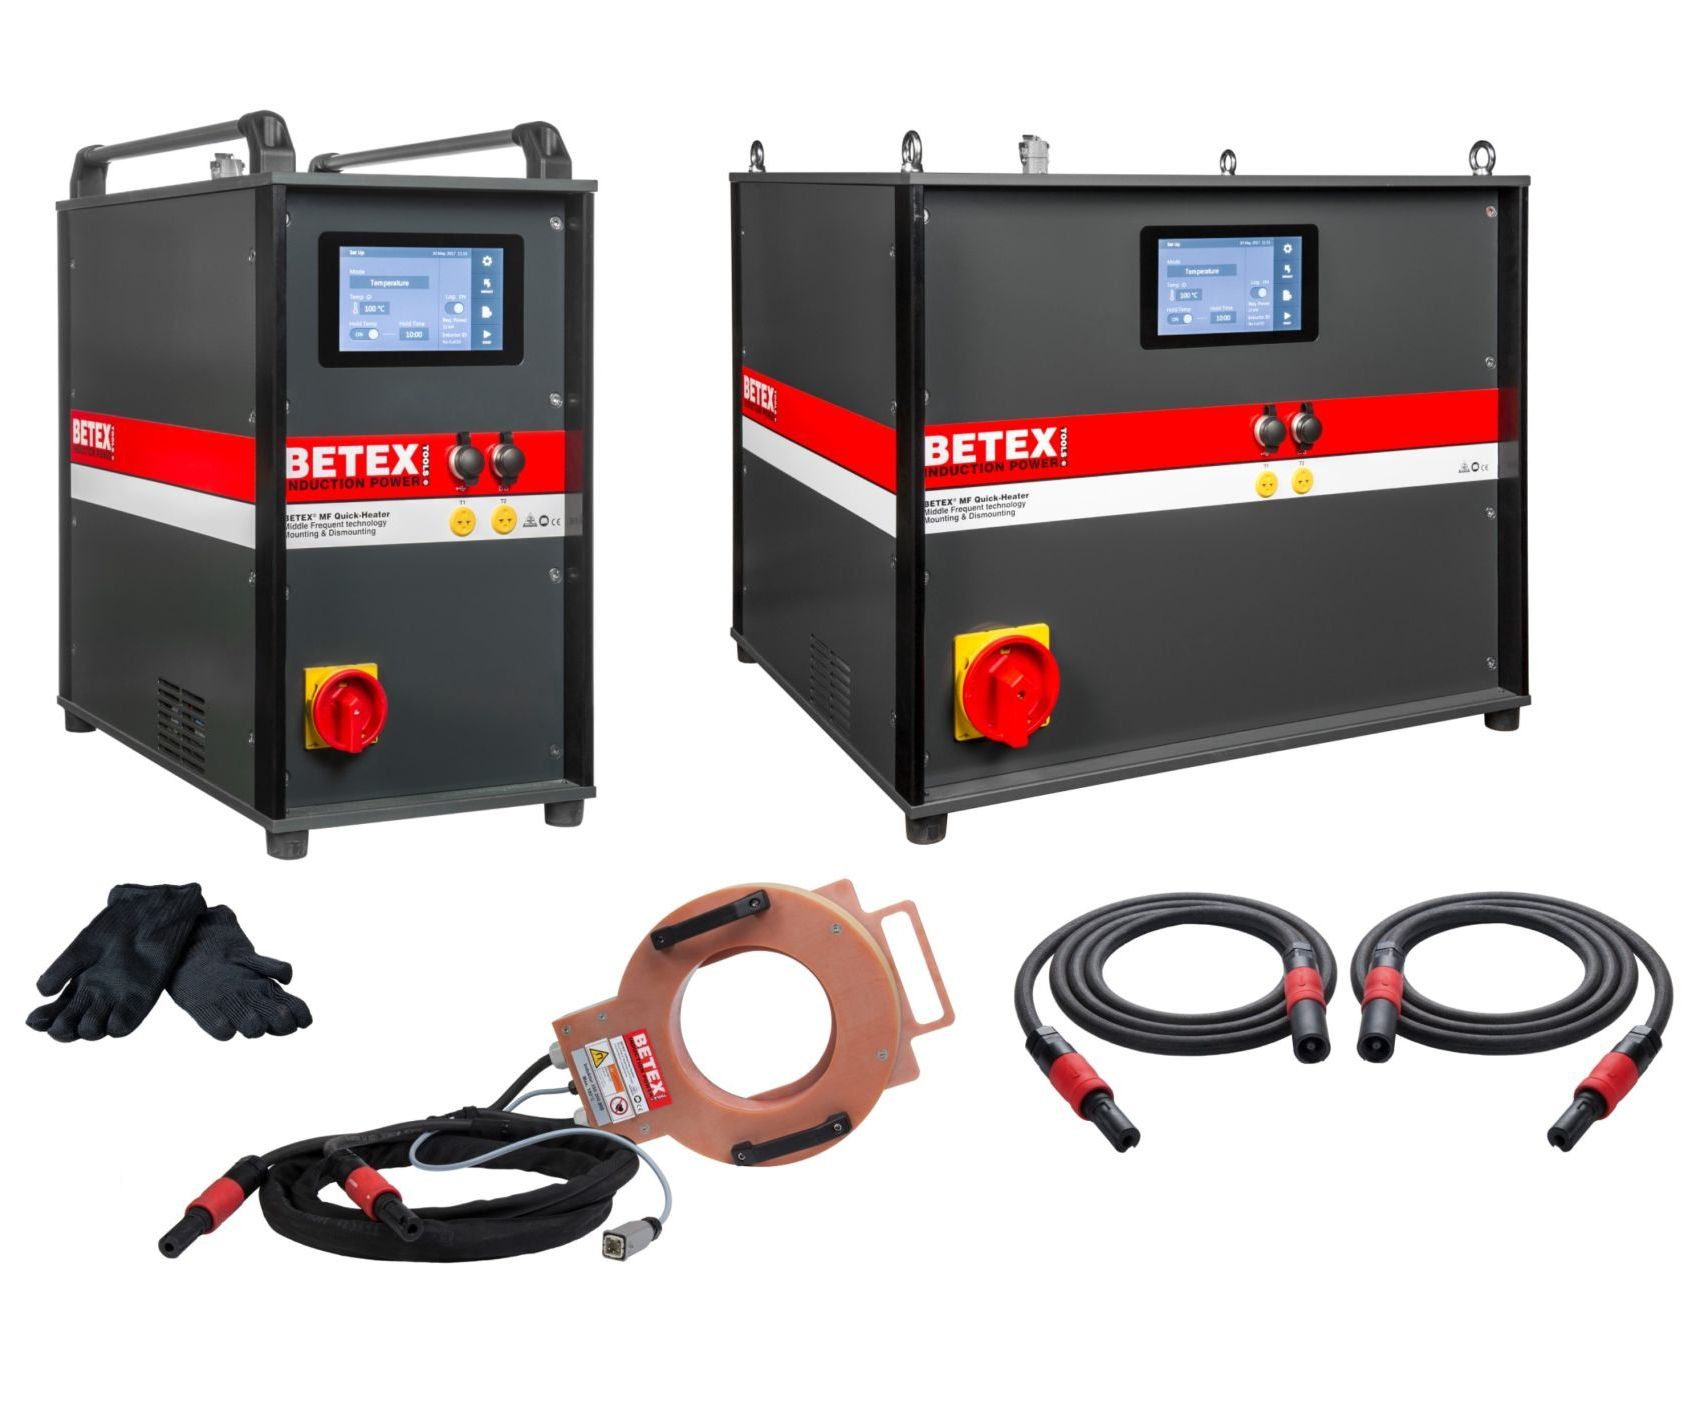 Betex MF Quick-Heaters 3.0 - Bega Special Tools